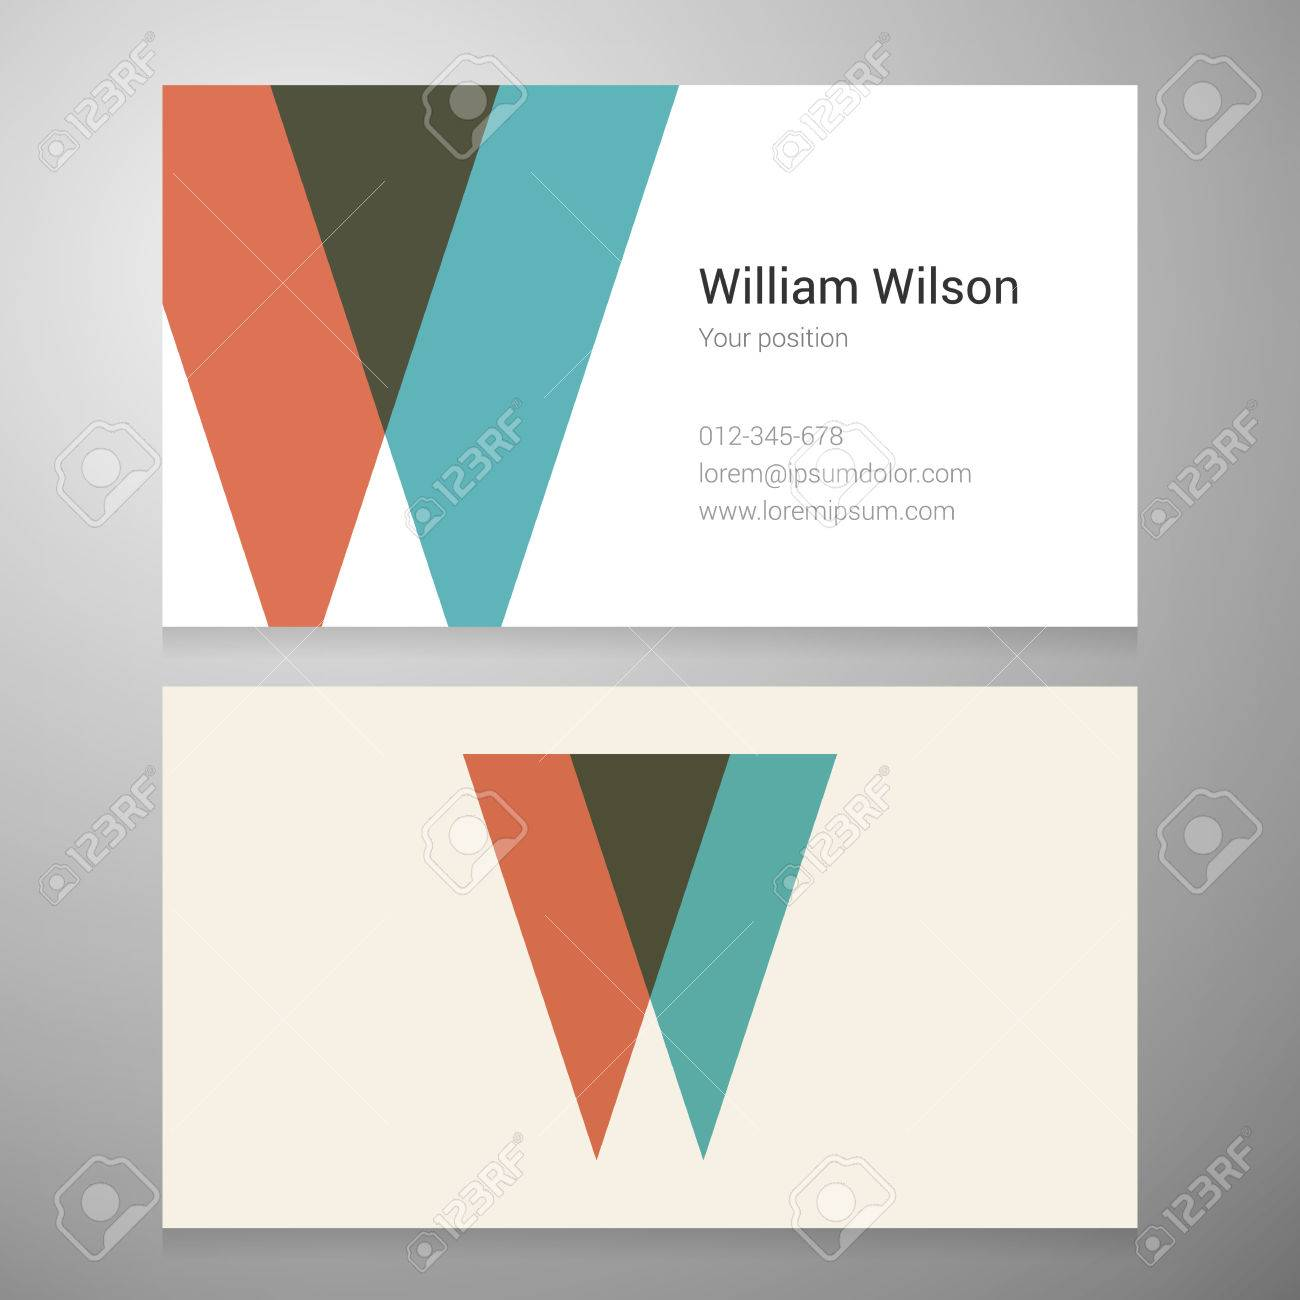 Modern Letter W Icon Business Card Template. Vector Design. Layered ...